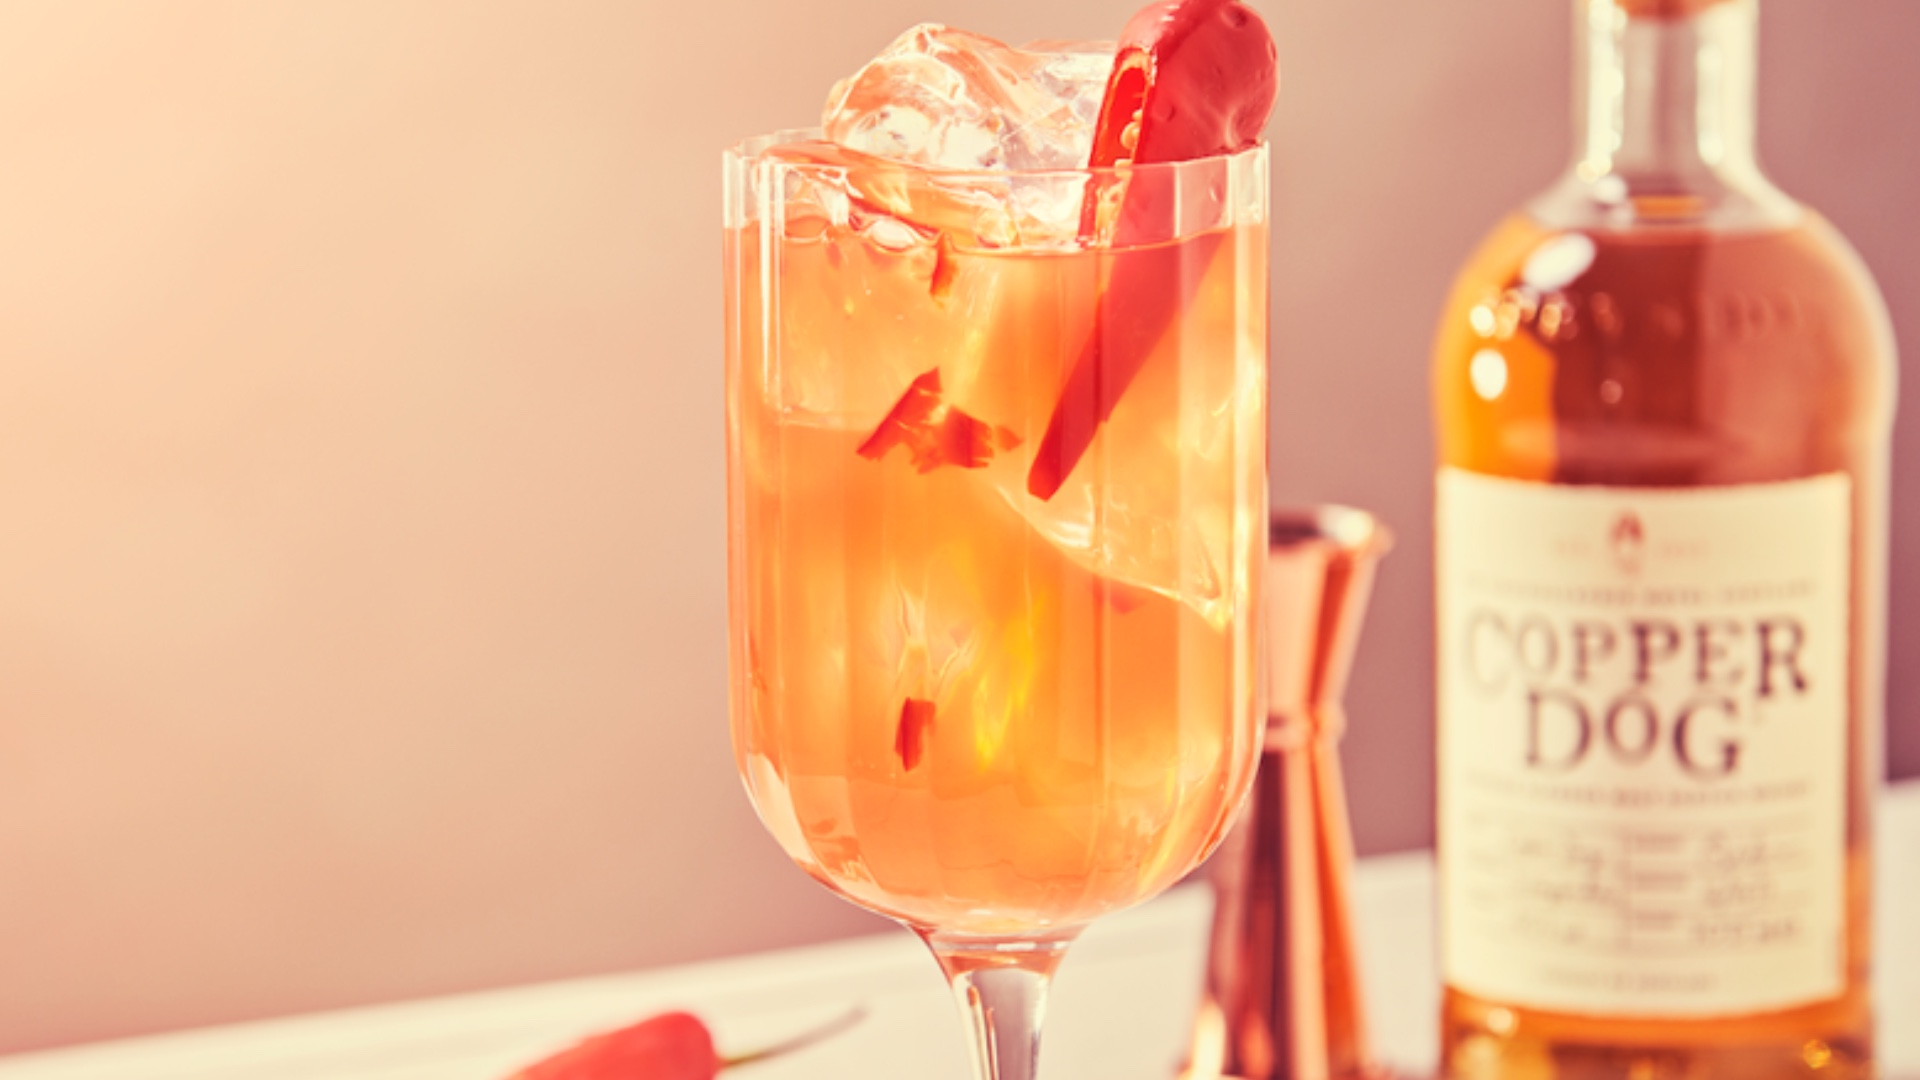 Autumnal cocktail inspo to leave you shaken and stirred! Copper Dog.